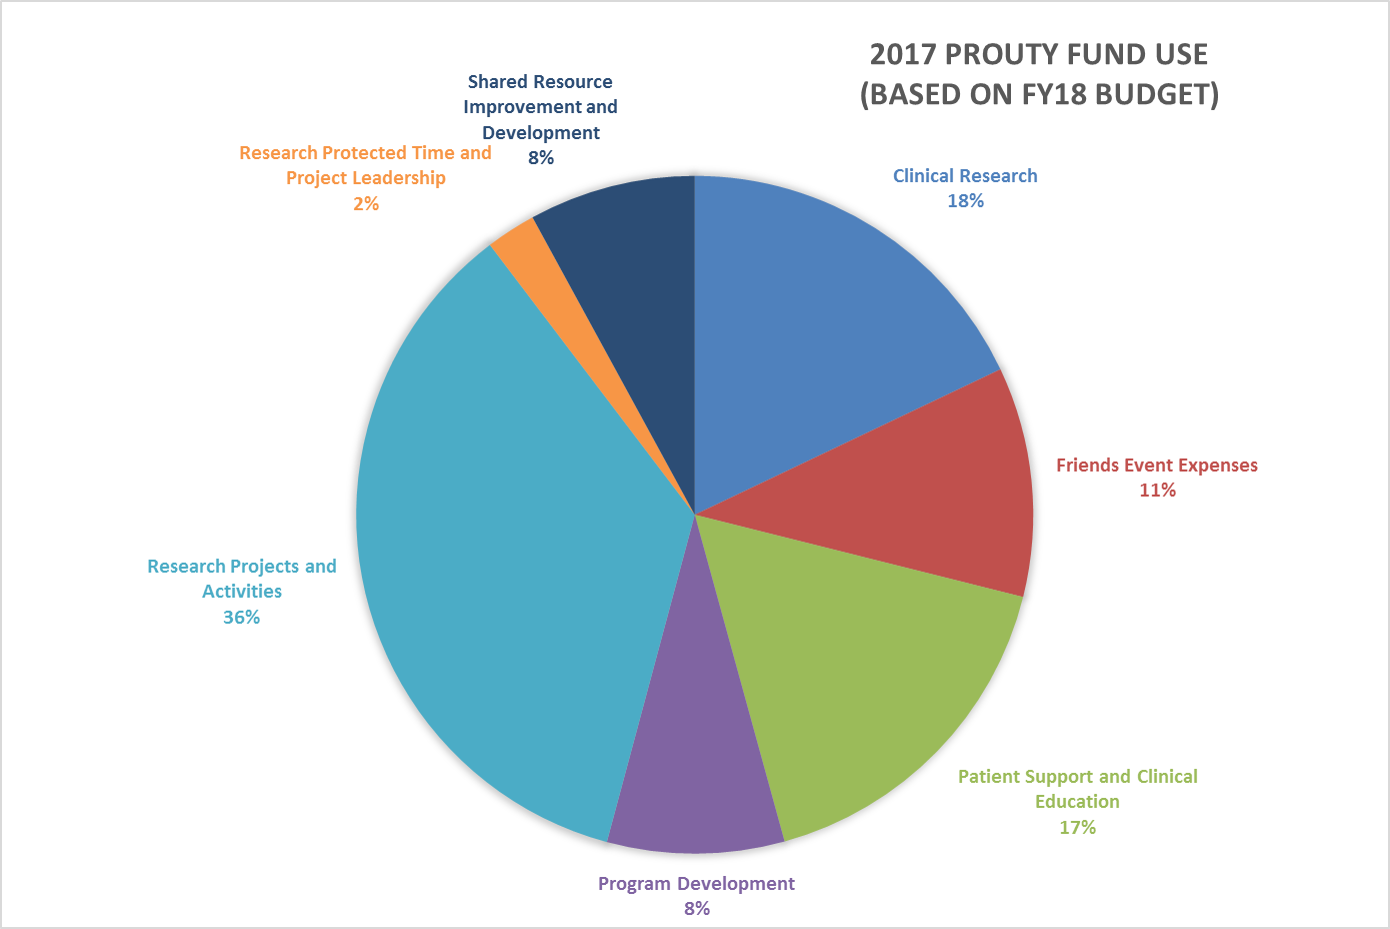 2017 Prouty Funds Use (FY18)